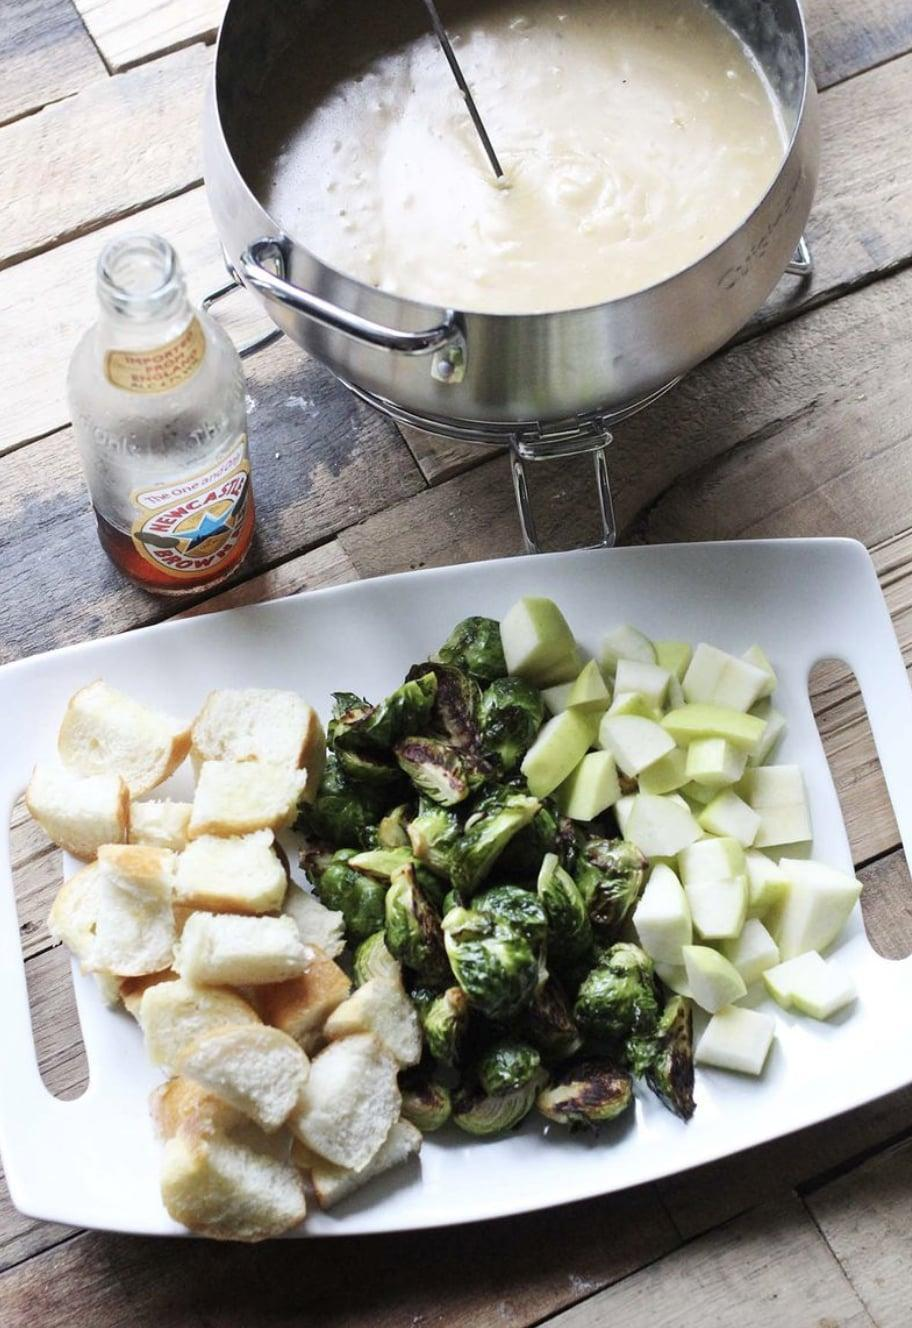 "<p>Ready to take fondue night to the next level? Here you go. This Newcastle recipe is made with garlic, gruyère cheese, and beer, meaning it's not only easy to make, but it's even easier to enjoy. Dig in!</p> <p><strong>Get the recipe</strong>: <a href=""https://abeautifulmess.com/newcastle-fondue/"" class=""link rapid-noclick-resp"" rel=""nofollow noopener"" target=""_blank"" data-ylk=""slk:Newcastle fondue"">Newcastle fondue</a></p>"